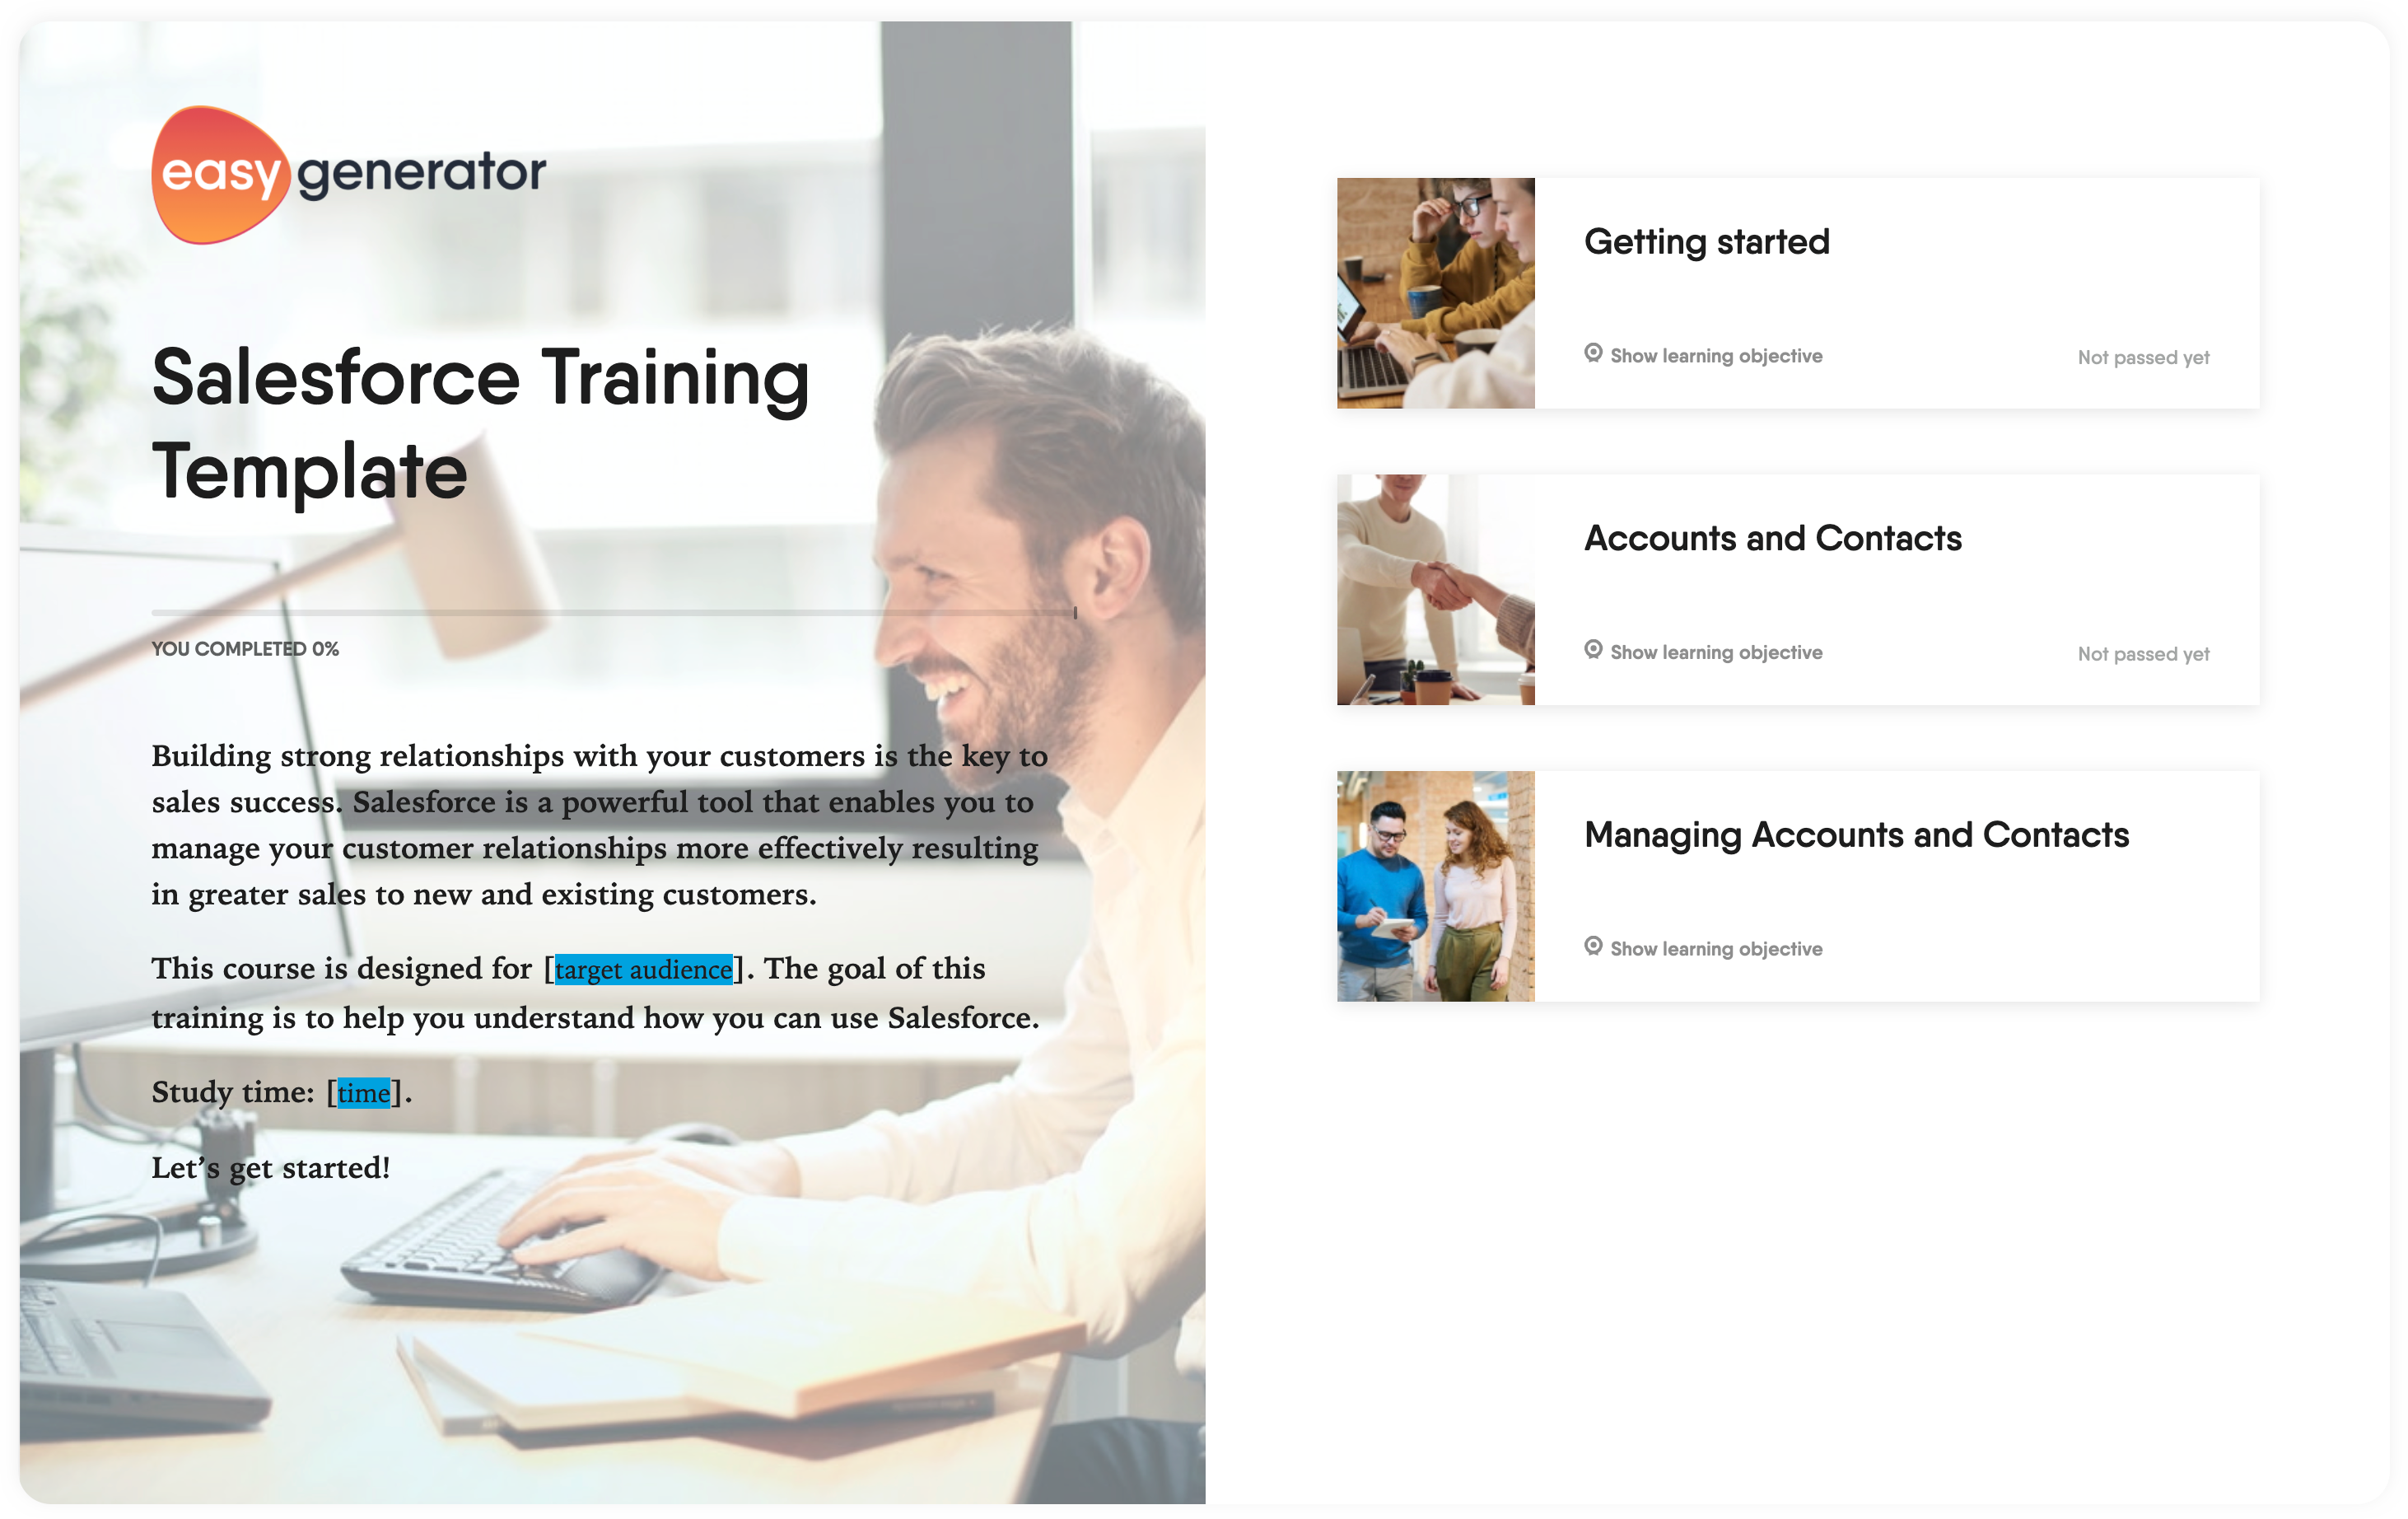 Salesforce training template Easygenerator